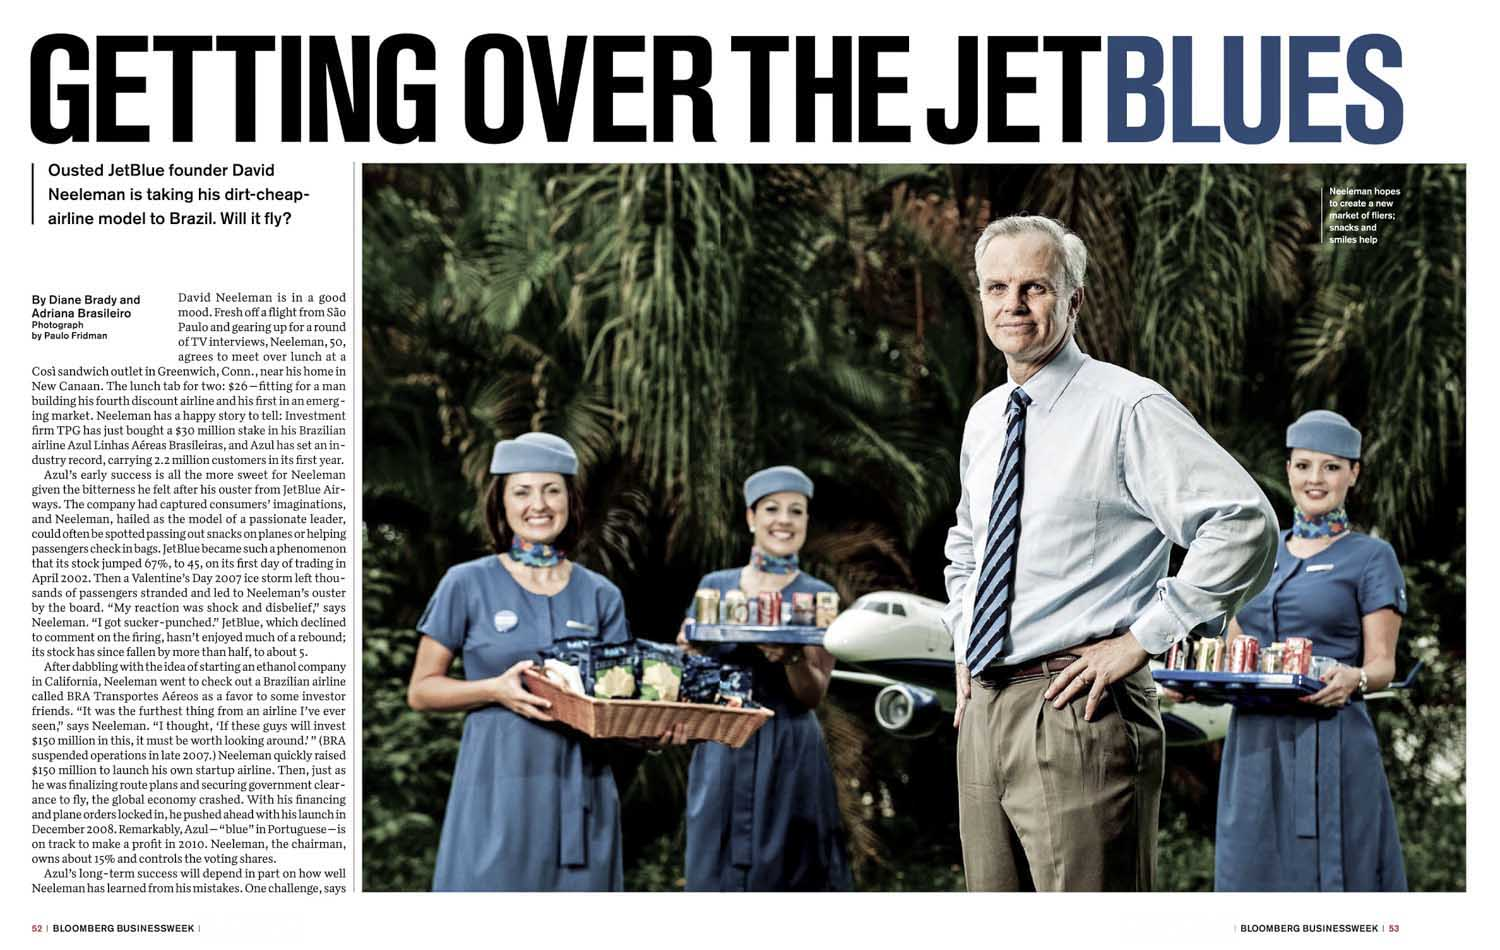 David Neleman, CEO Azul Airlines, para Bloomberg Business Week - EUA.